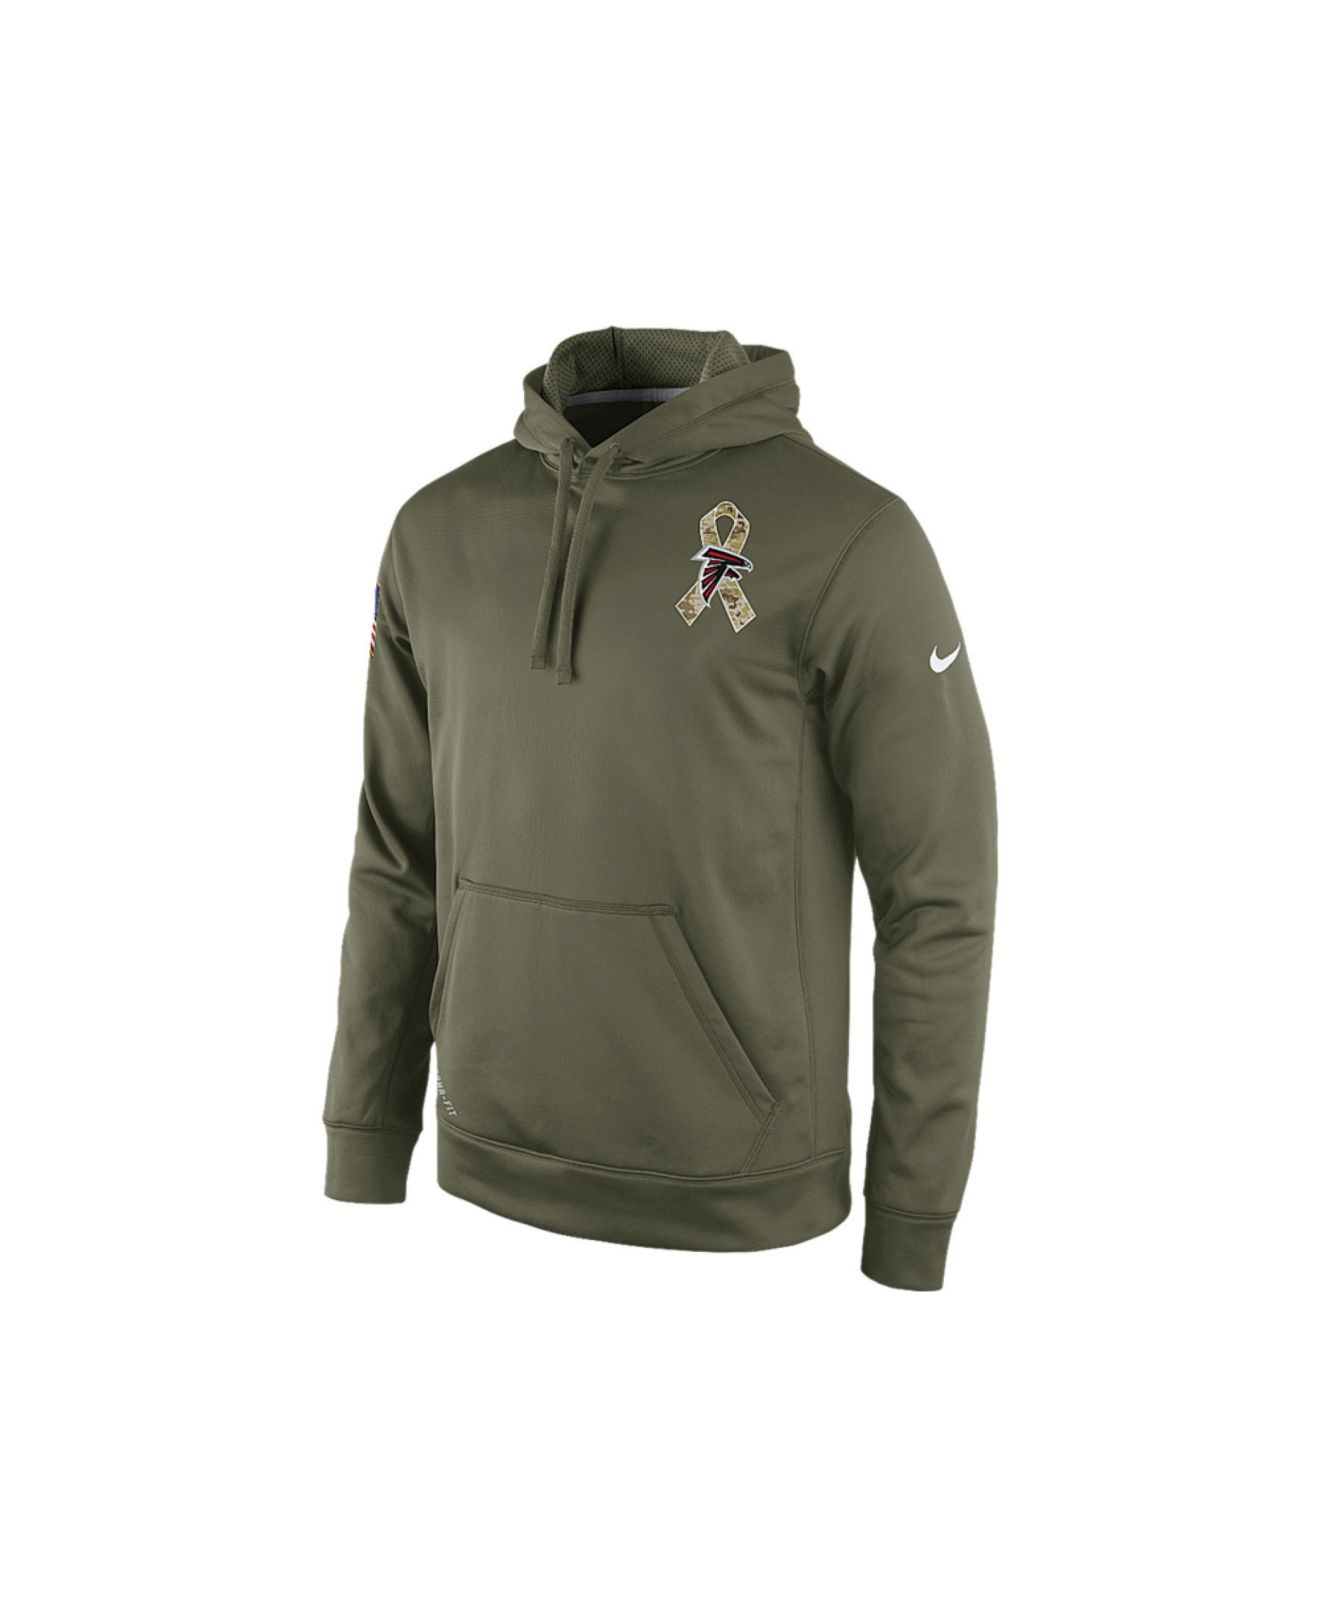 new product 8a1e9 496d1 salute the troops nfl hoodie